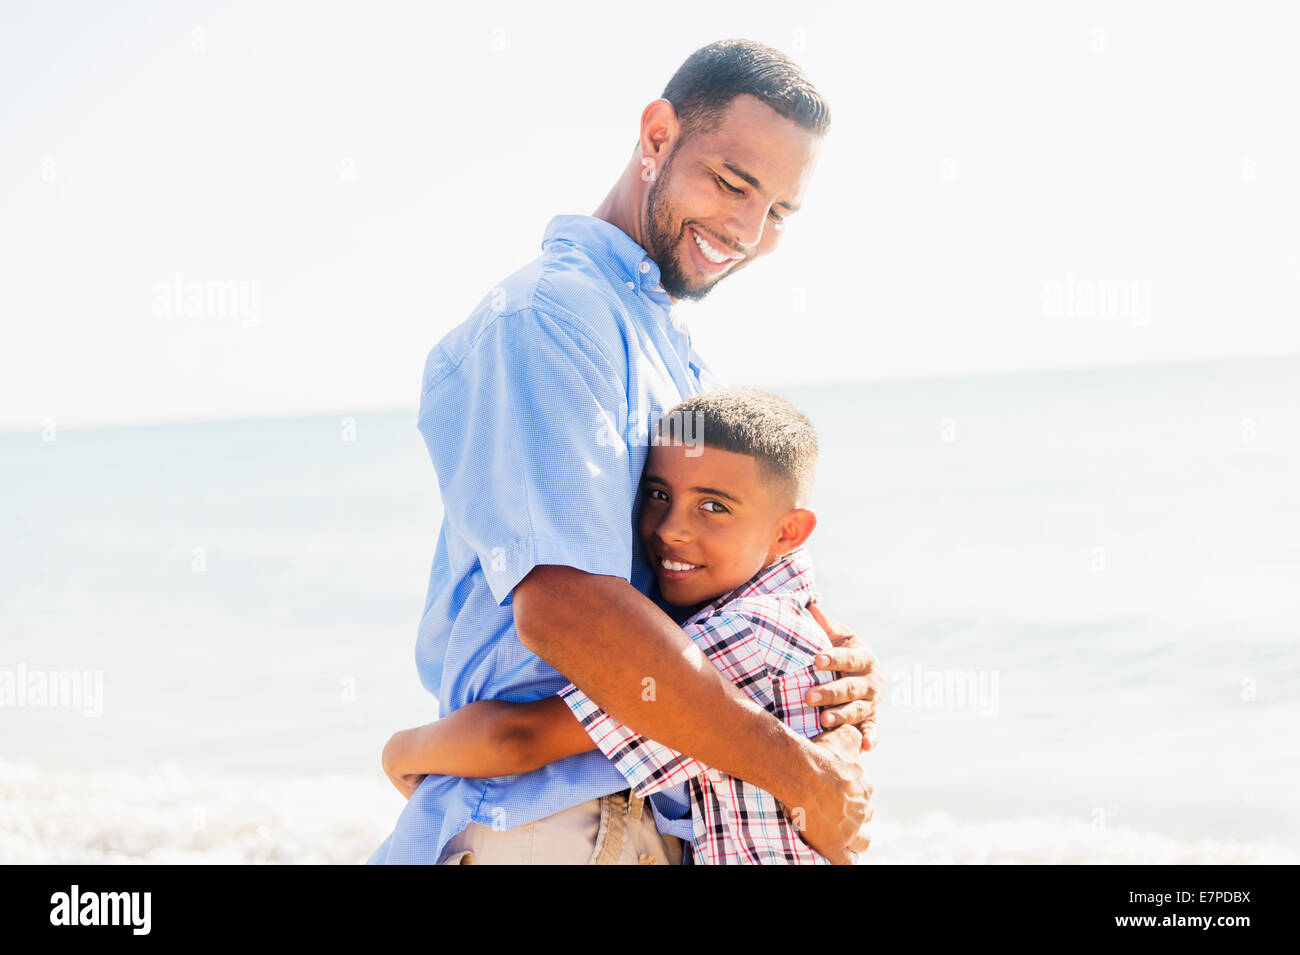 Father and son (10-11) embracing on beach - Stock Image